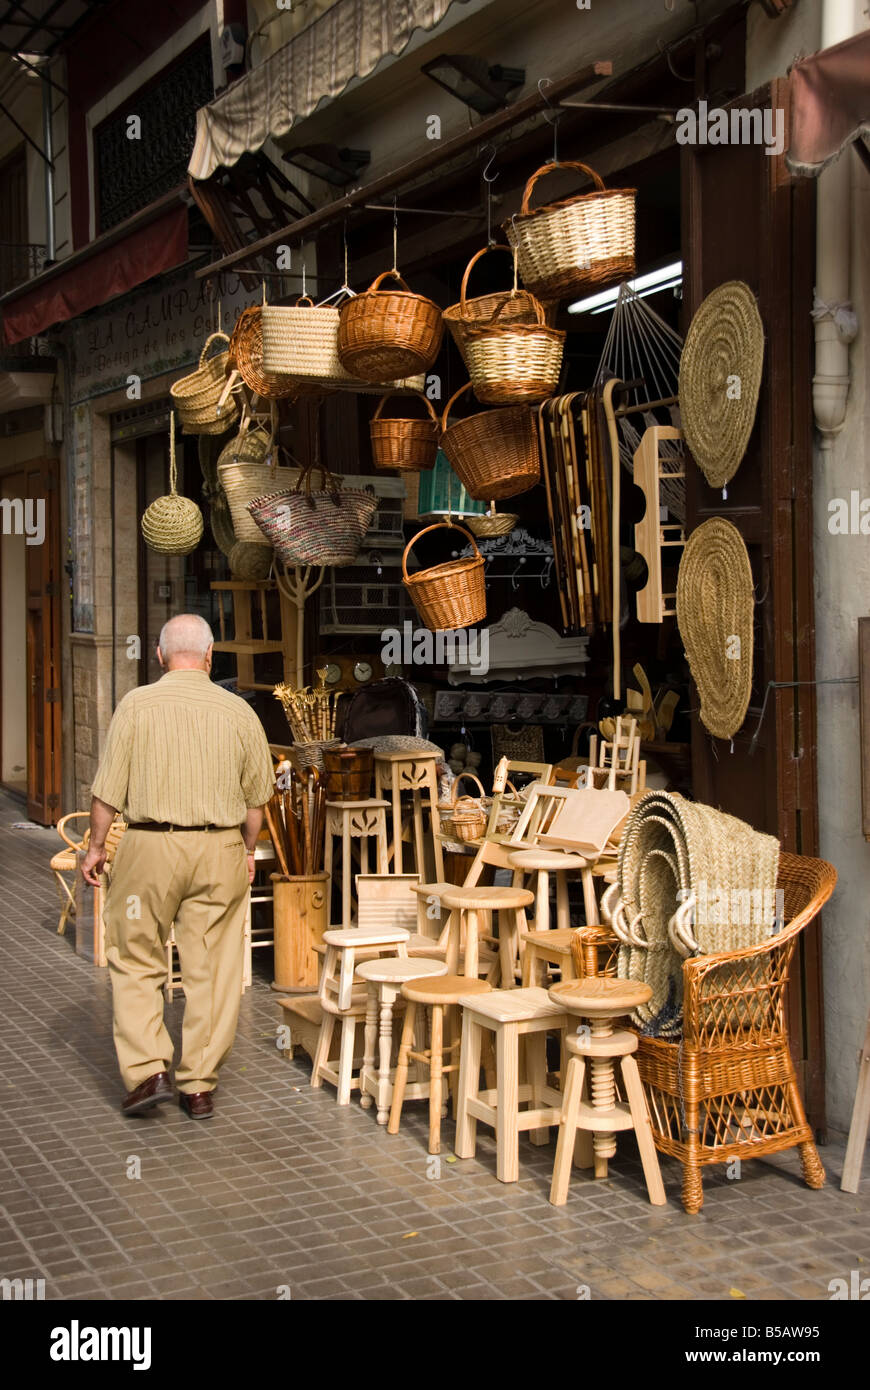 Handicraft shop selling wood furniture and wicker work in the city centre of Valencia made in the Valencian region - Stock Image